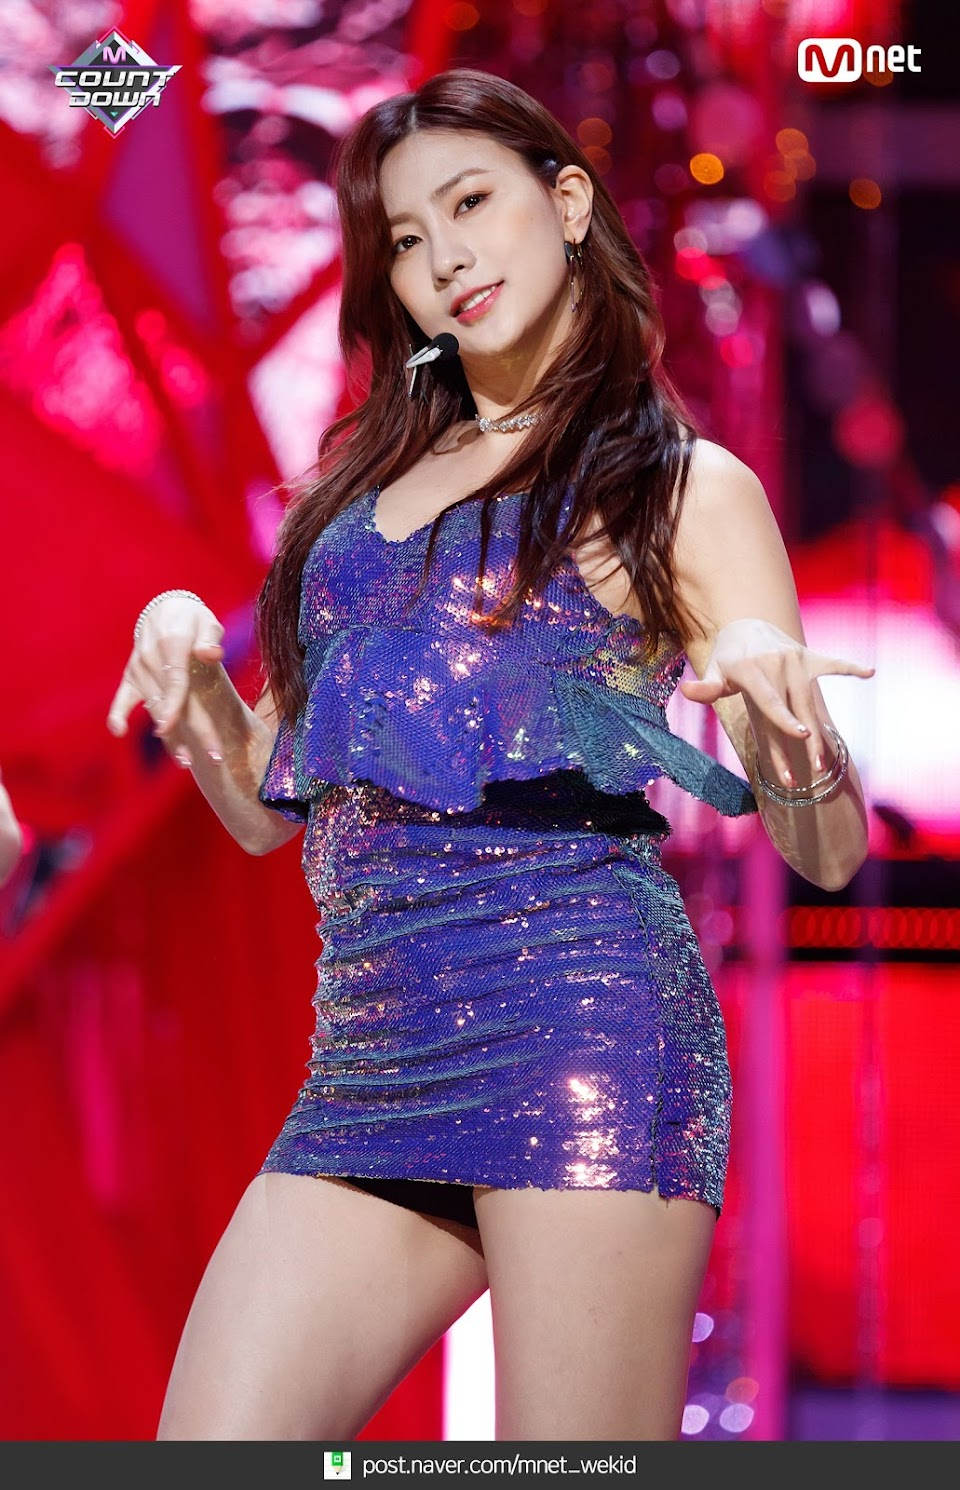 hayoung body 4